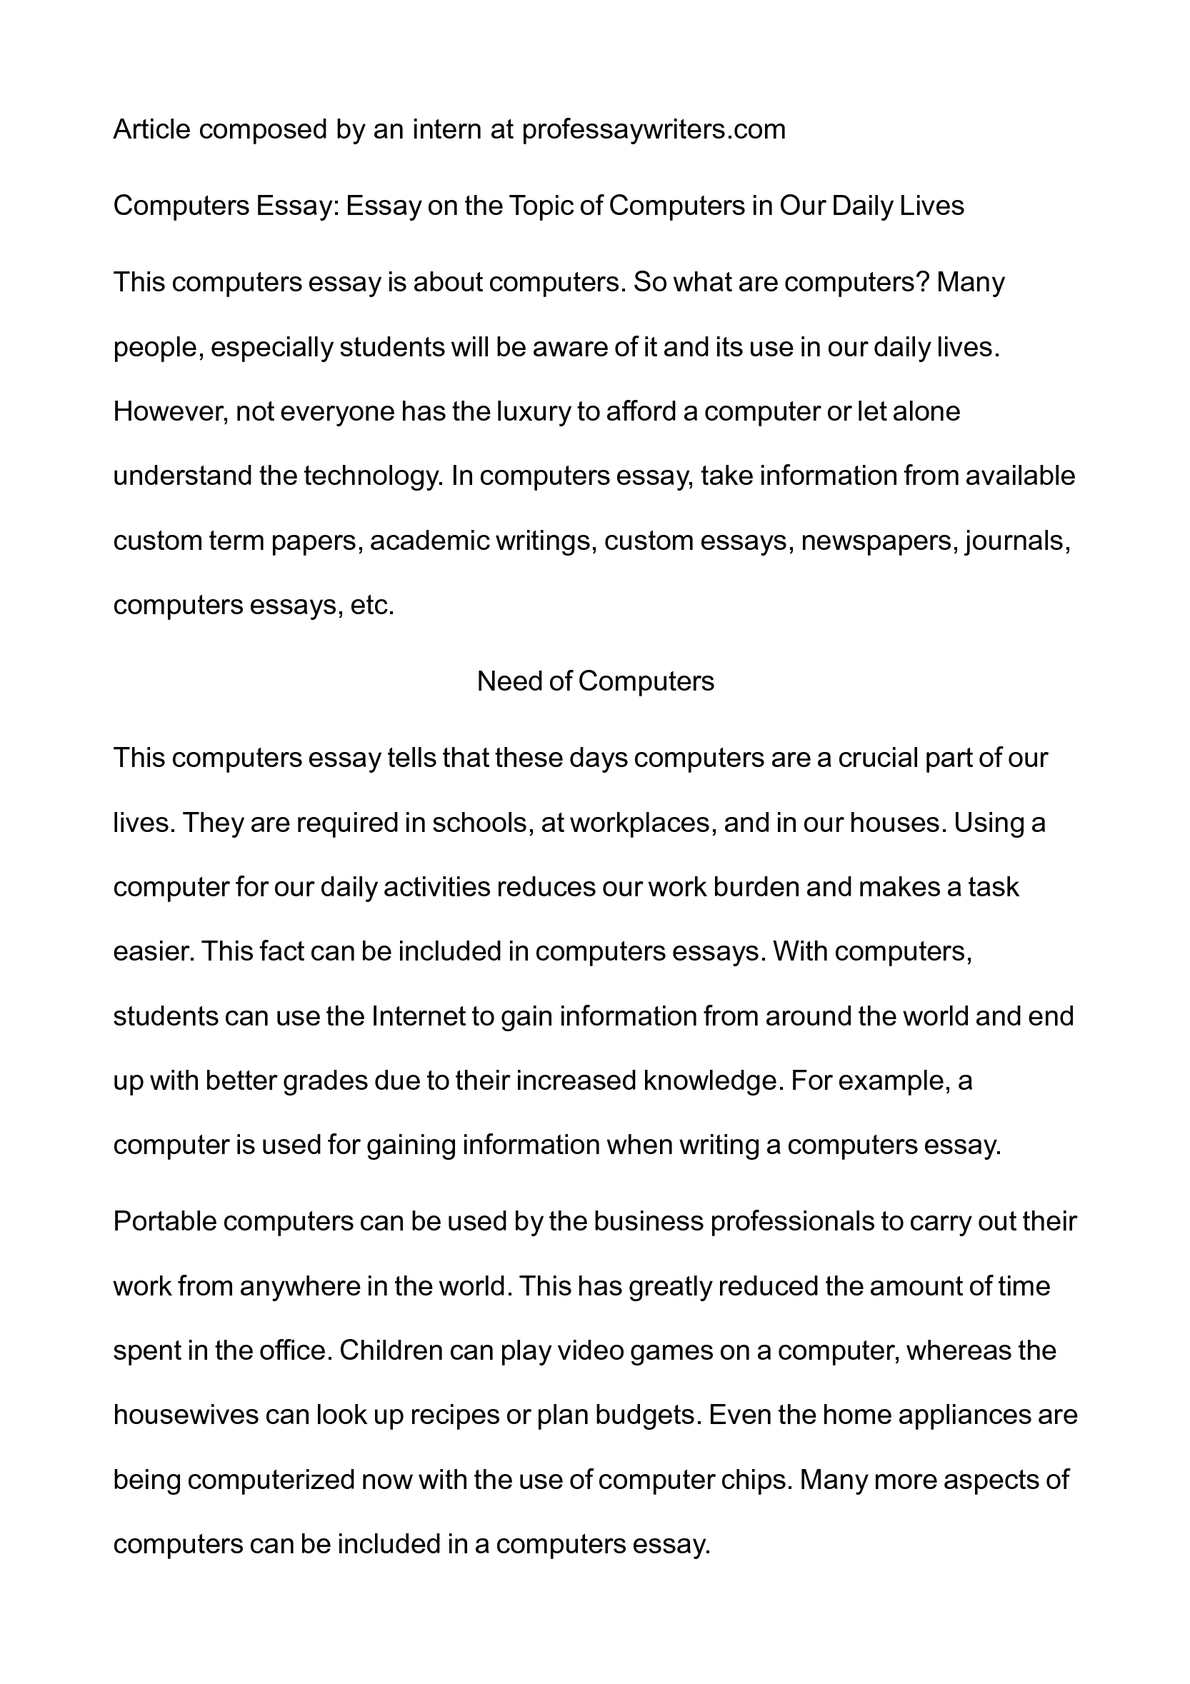 calamo   computers essay essay on the topic of computers in our  computers essay essay on the topic of computers in our daily lives